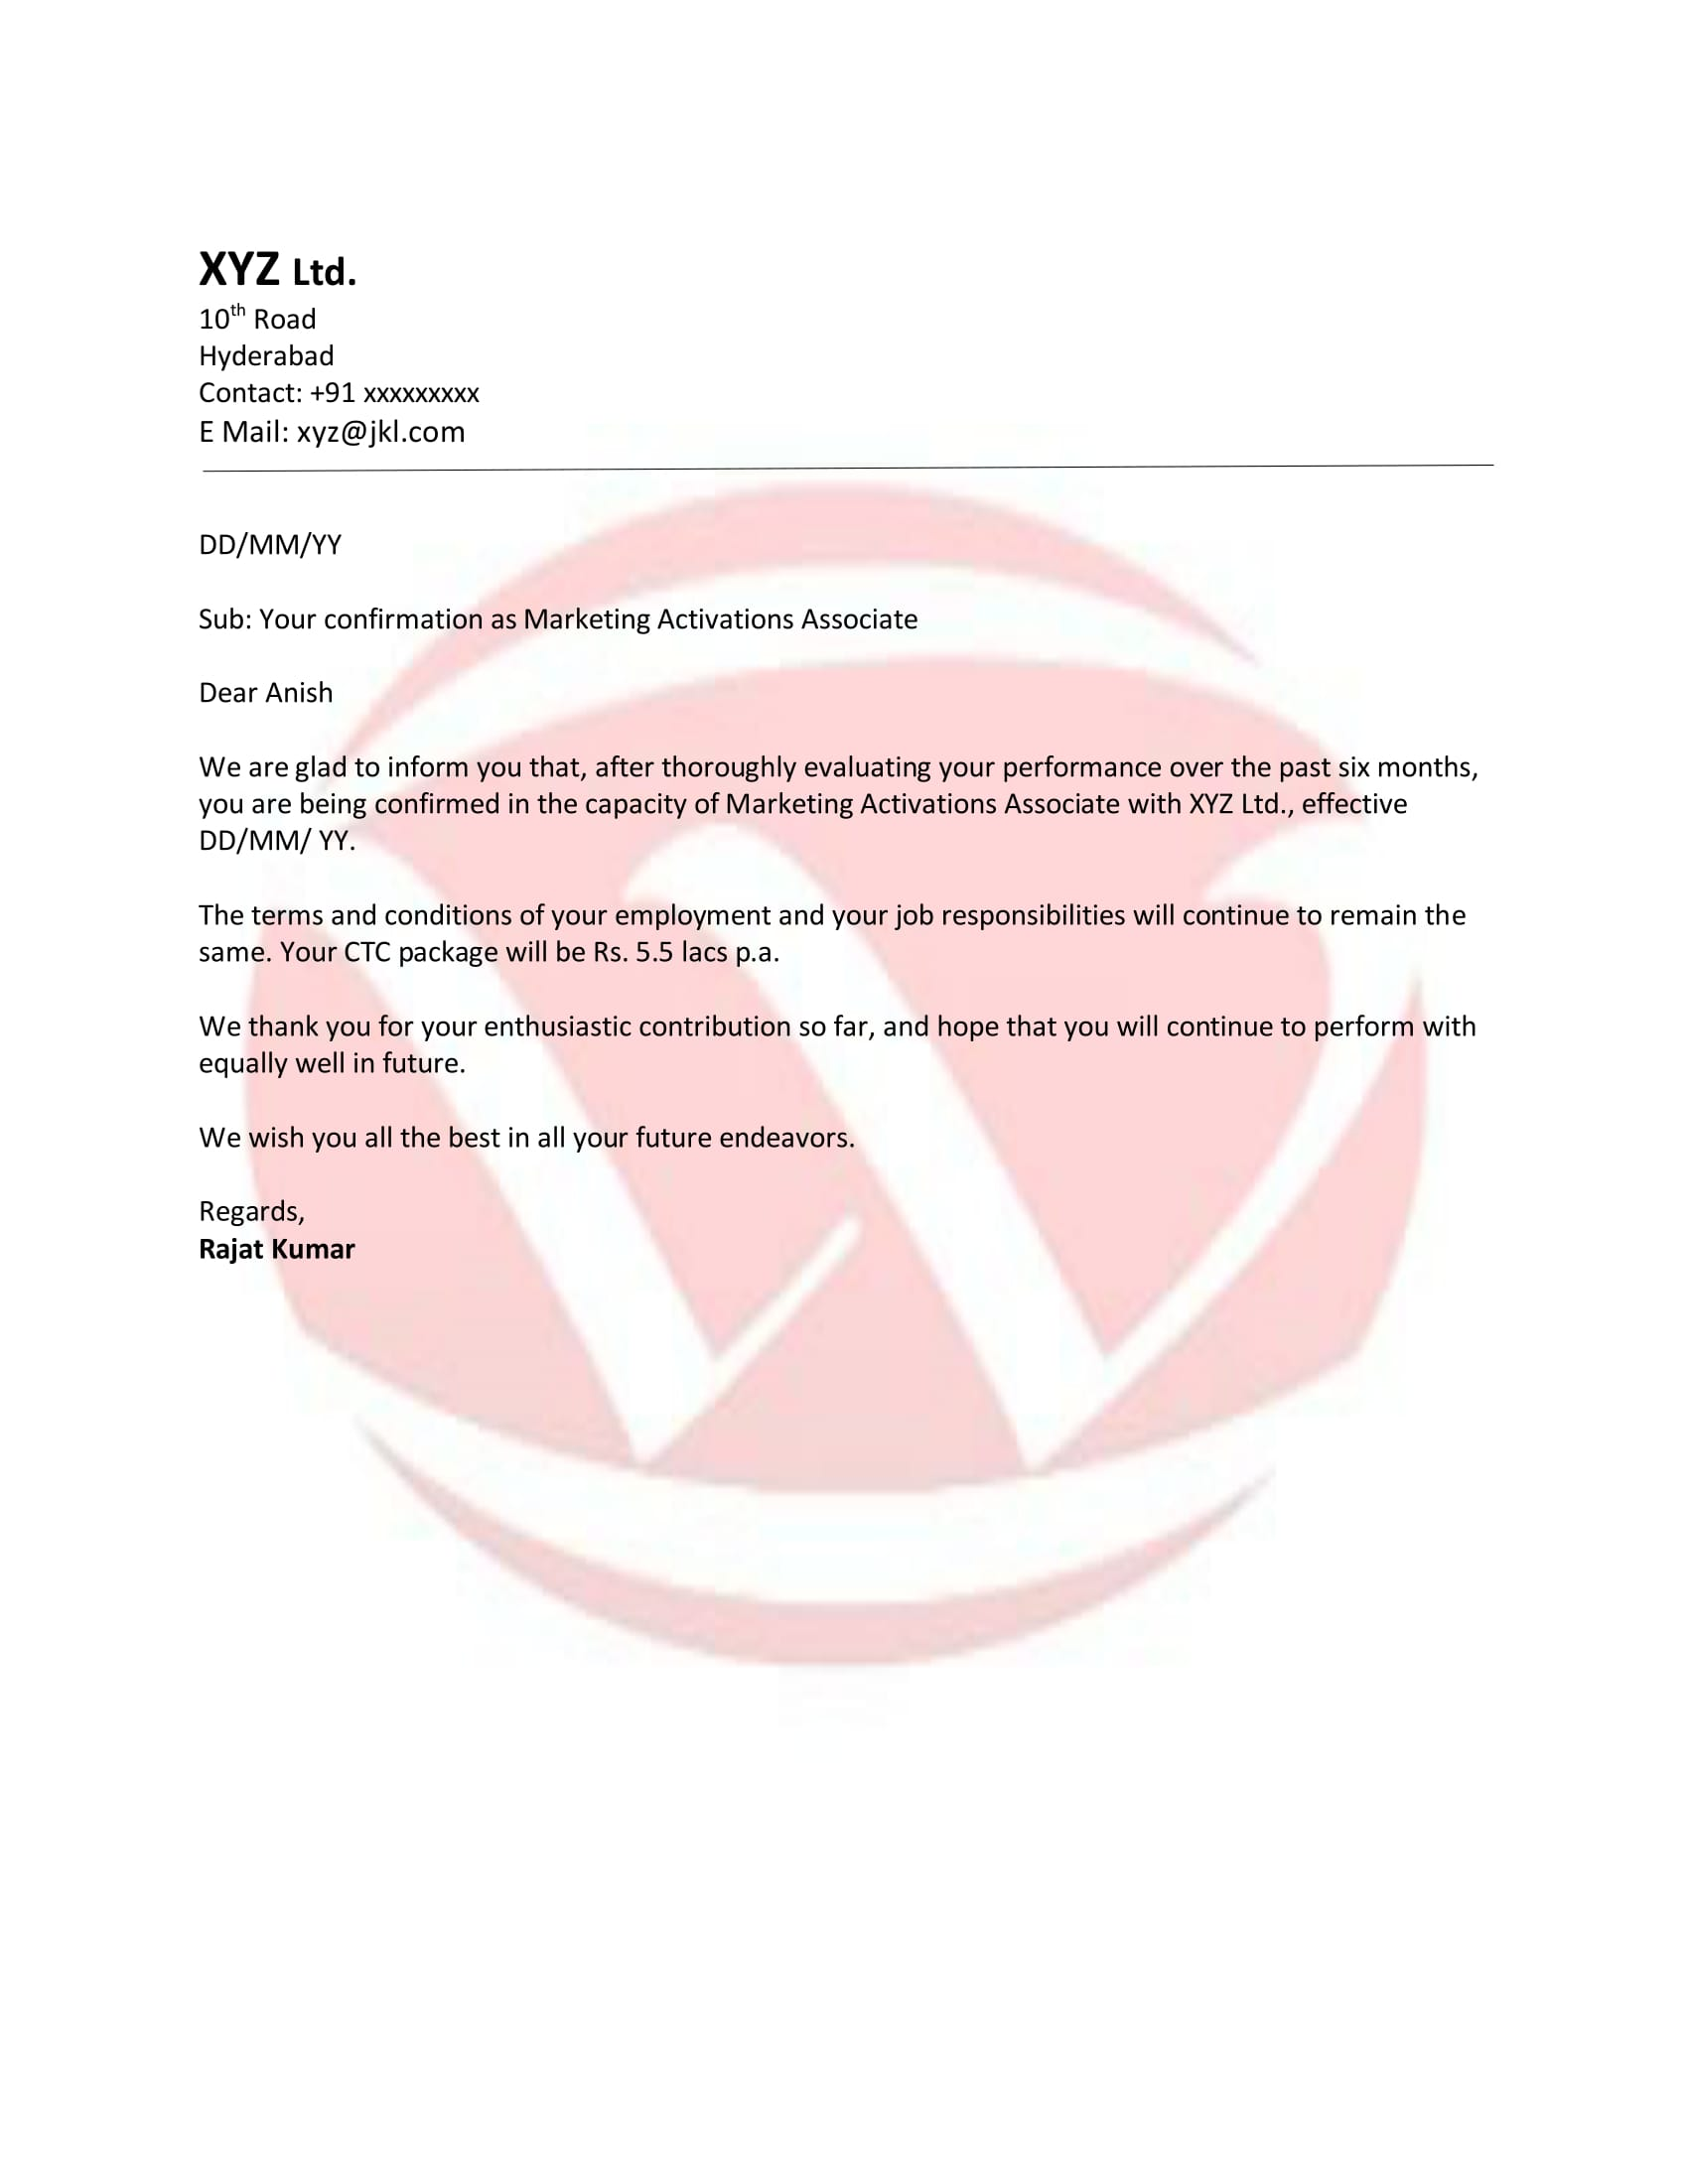 confirmation sample letter format download letter format templates